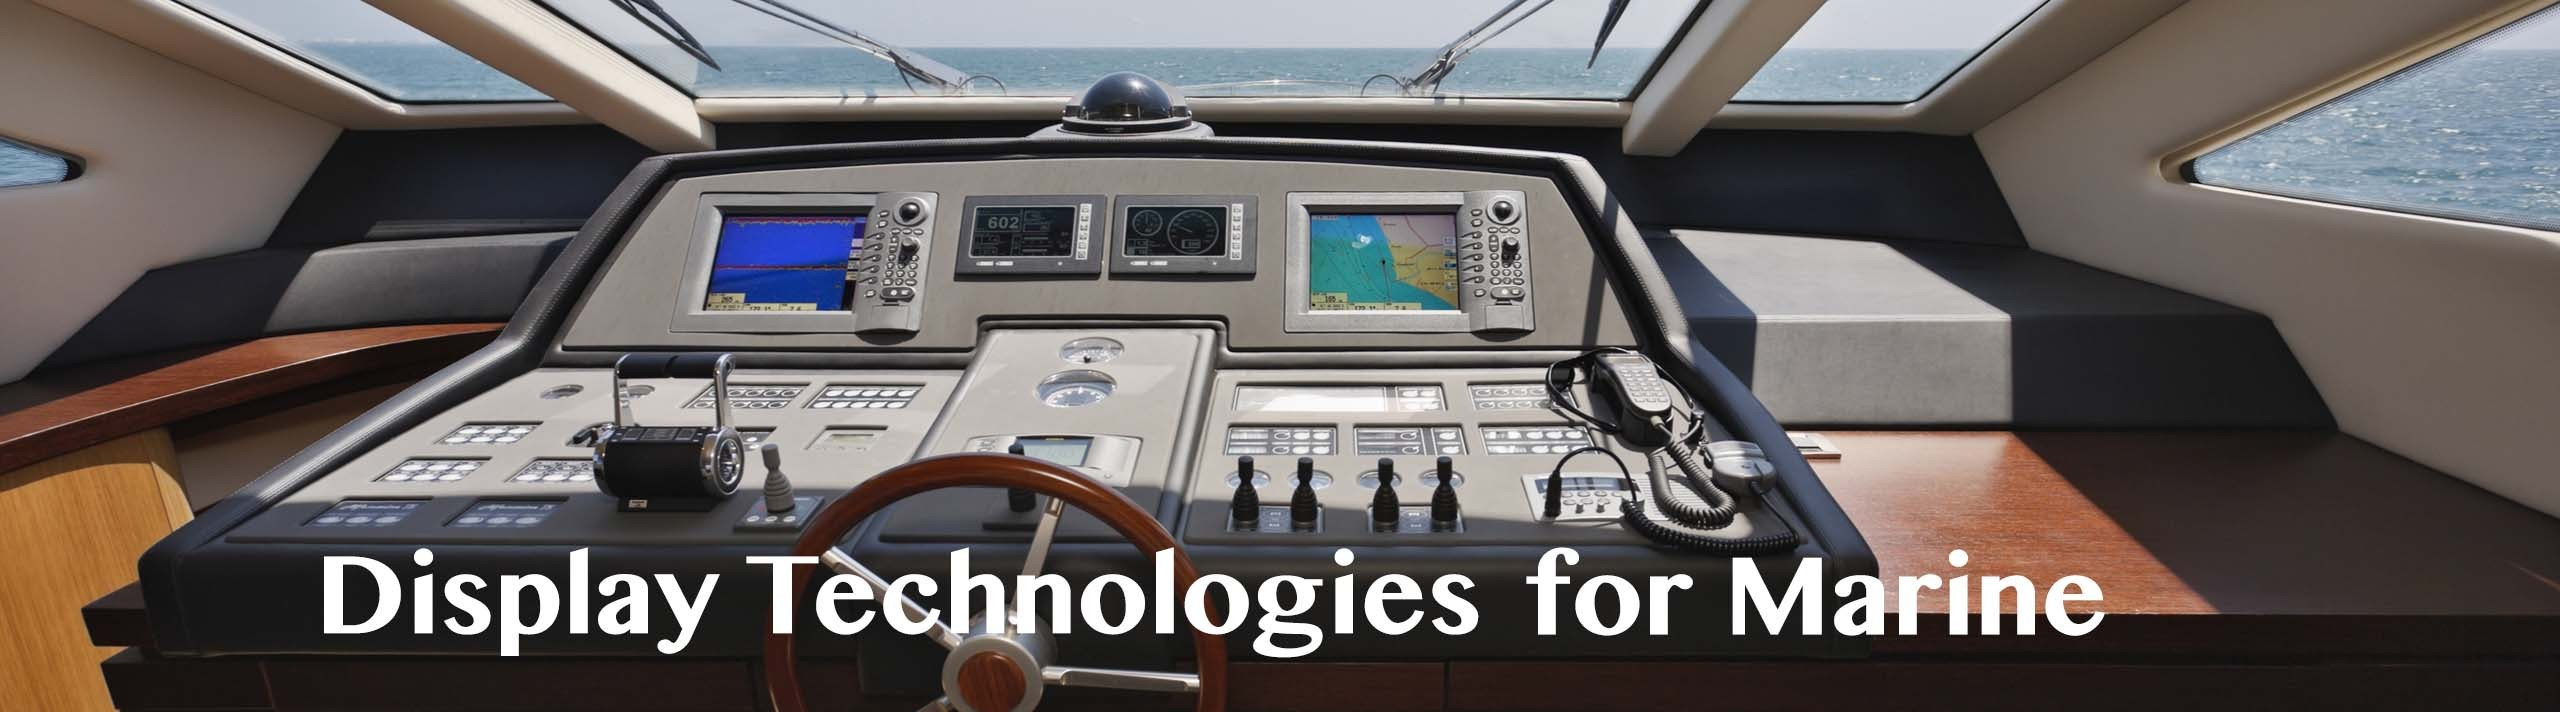 Display Technologies for Marine